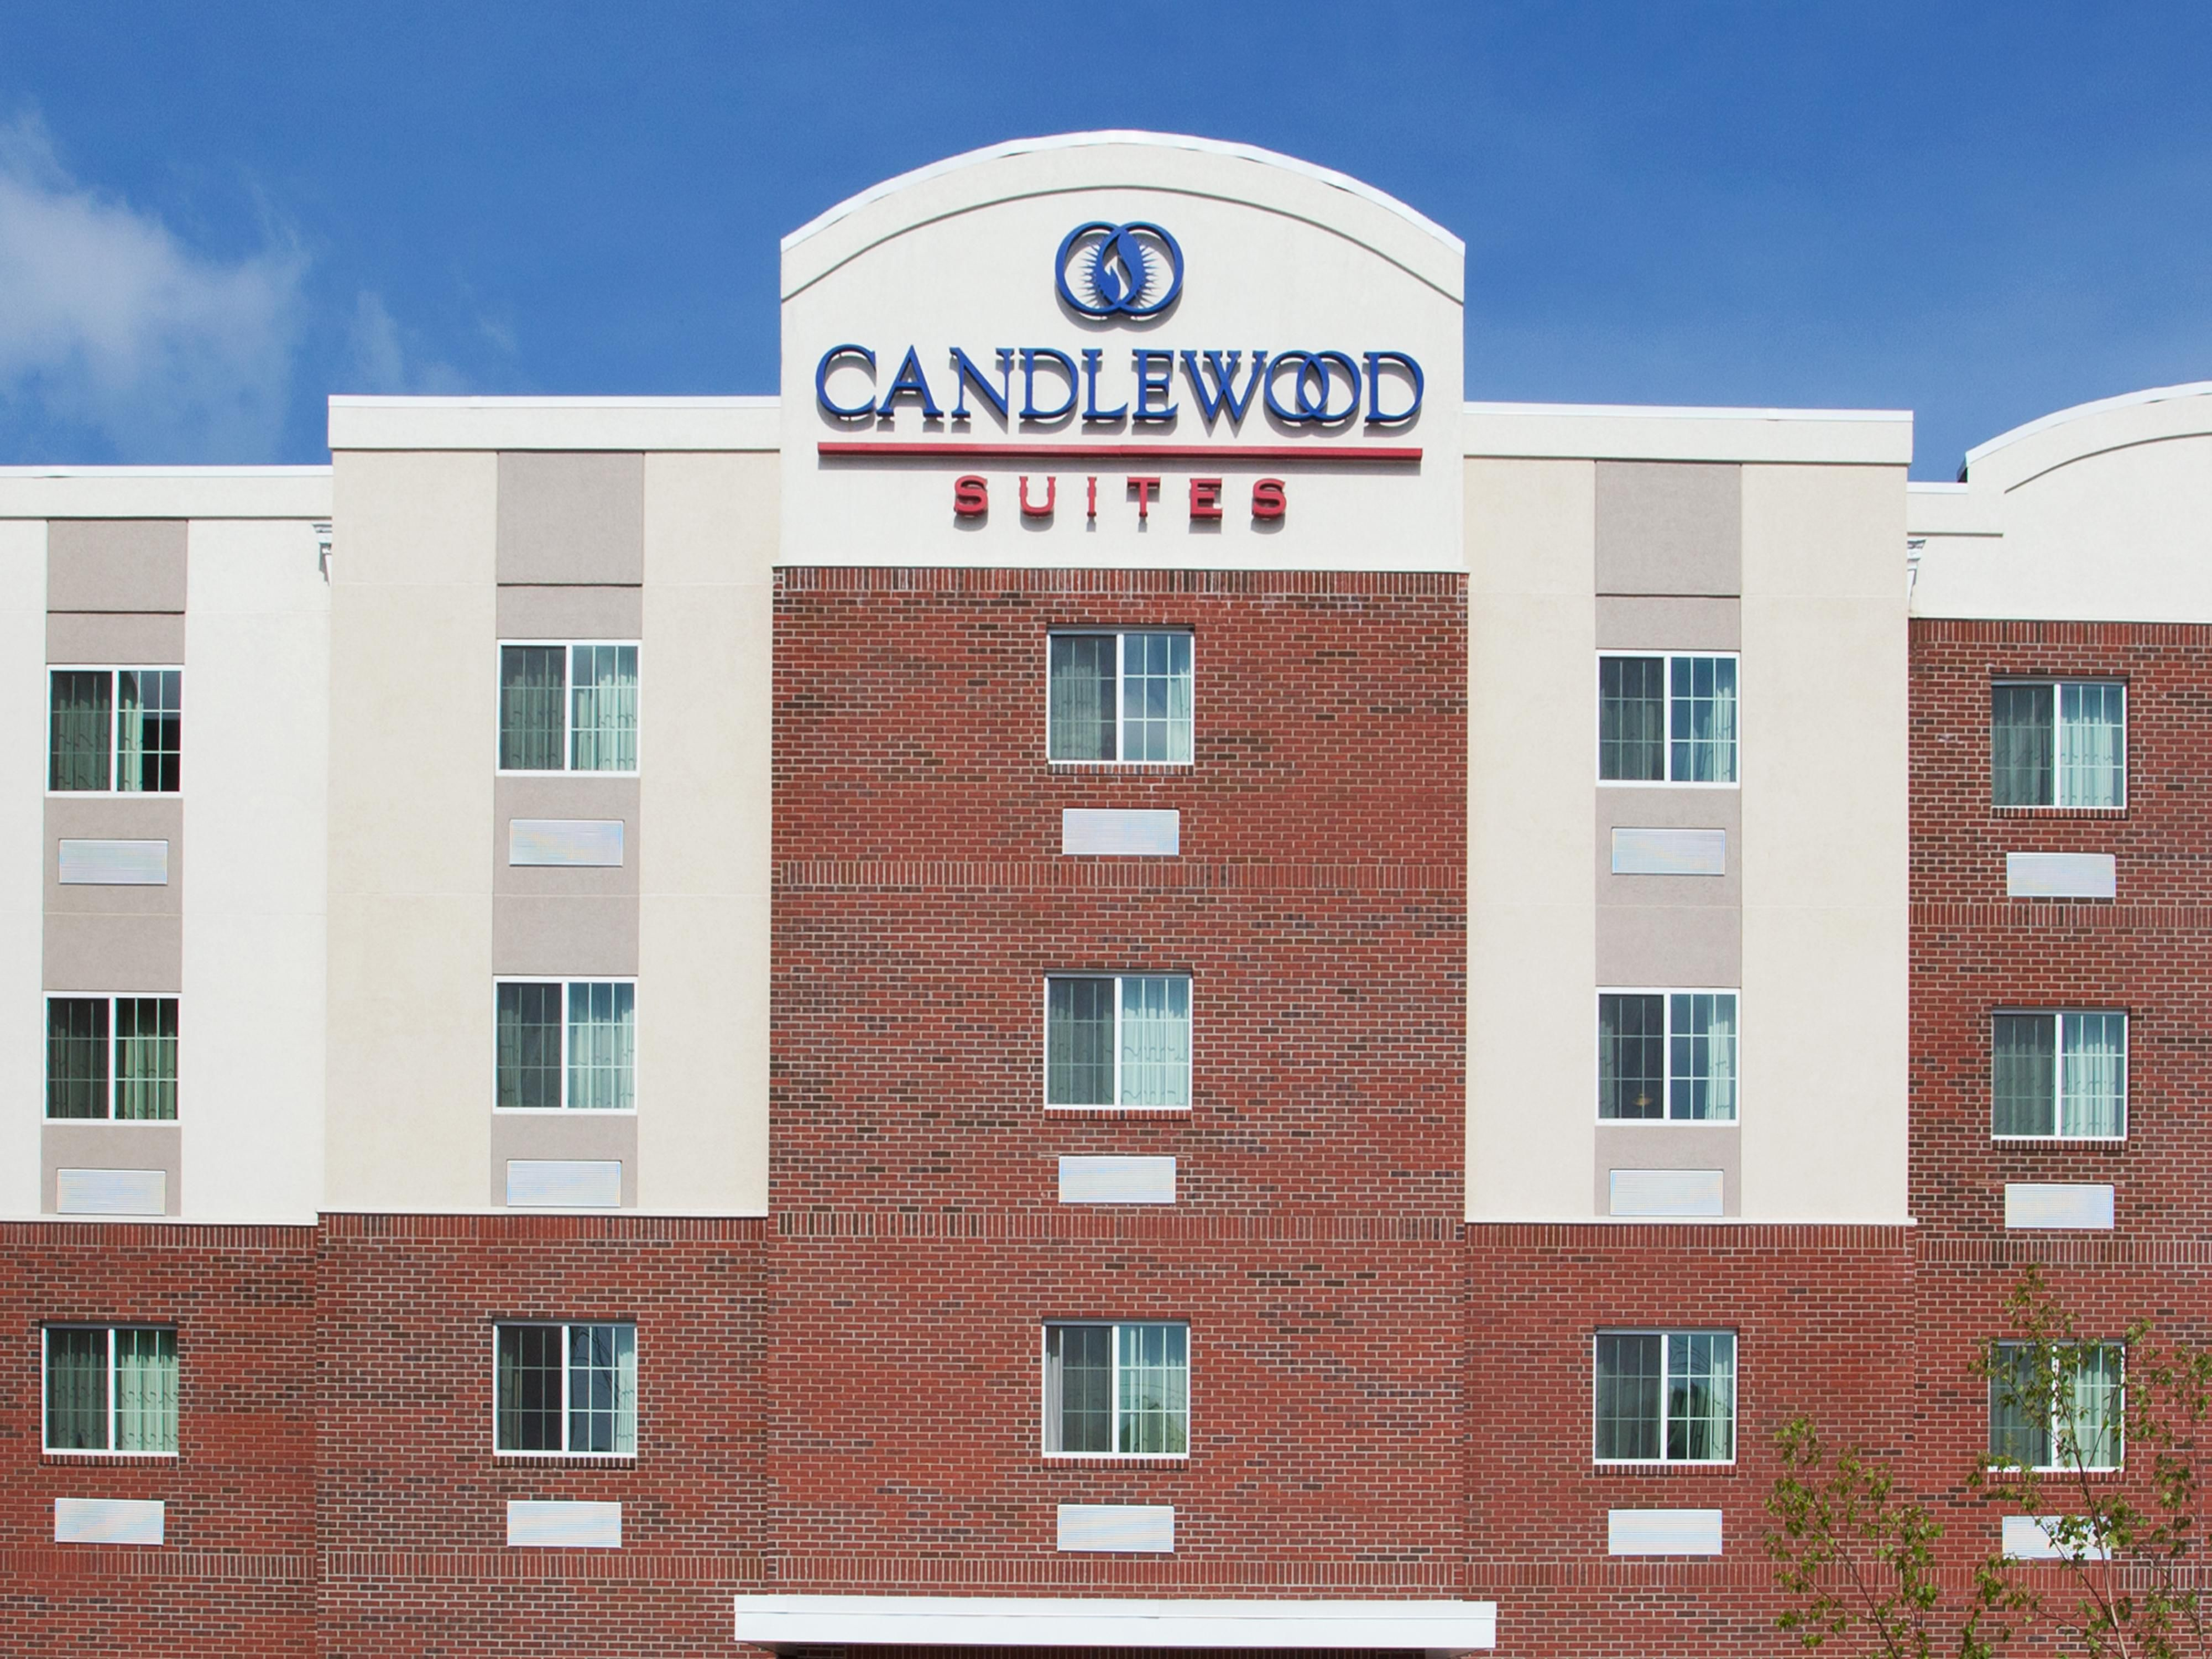 Washington Hotels Candlewood Suites North Extended Stay Hotel In Pennsylvania